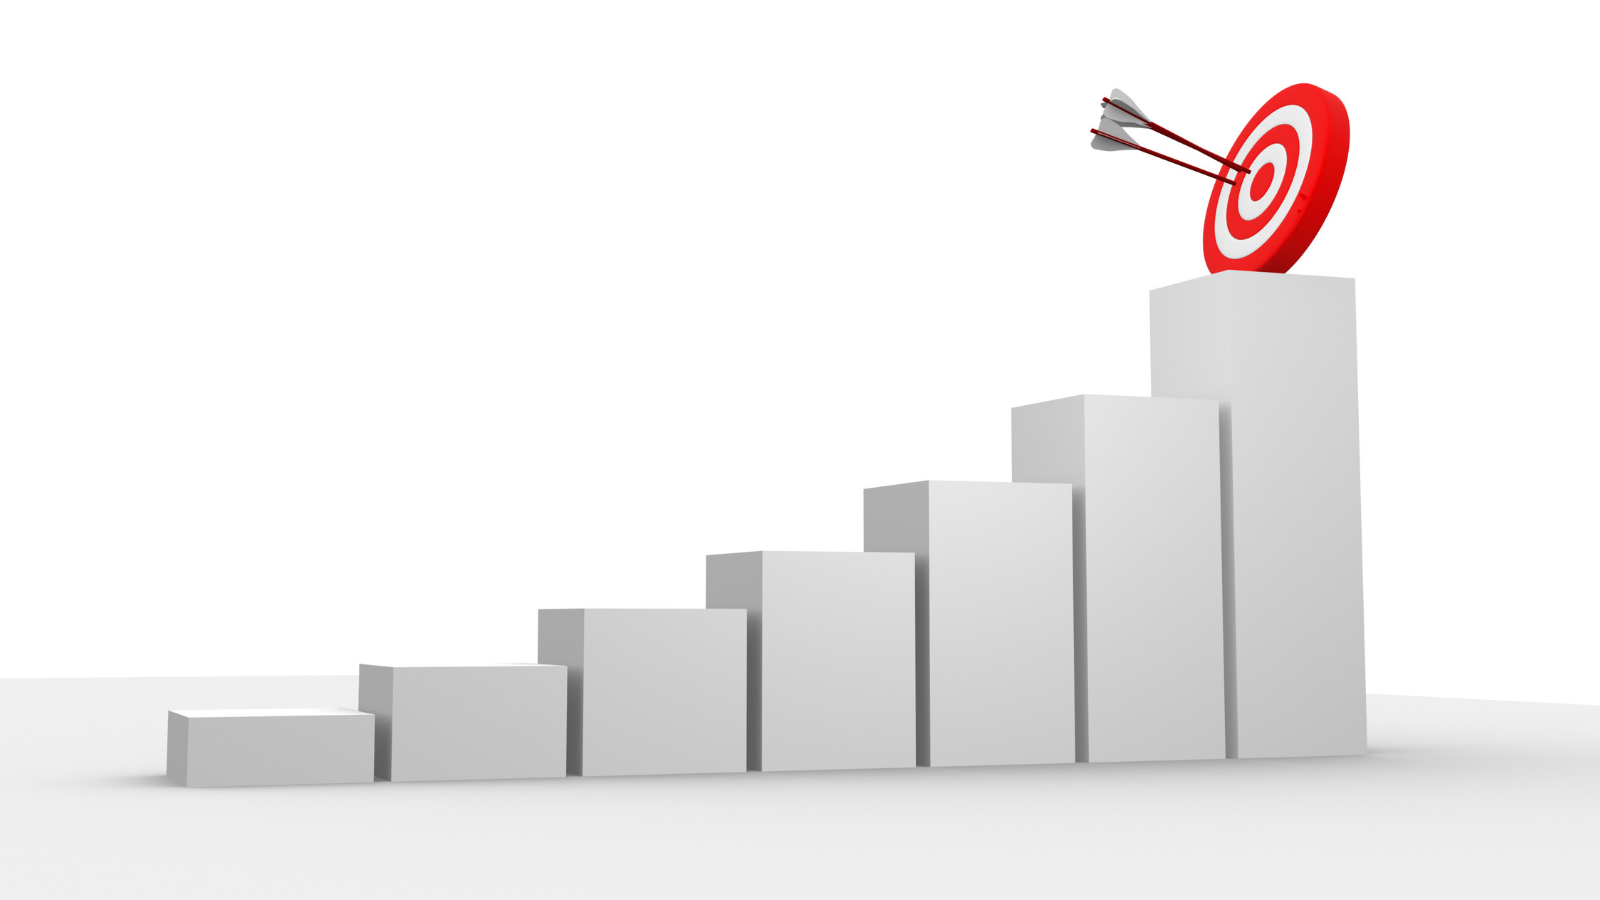 3 Ways a Target Drive is Different From a Sales Contest